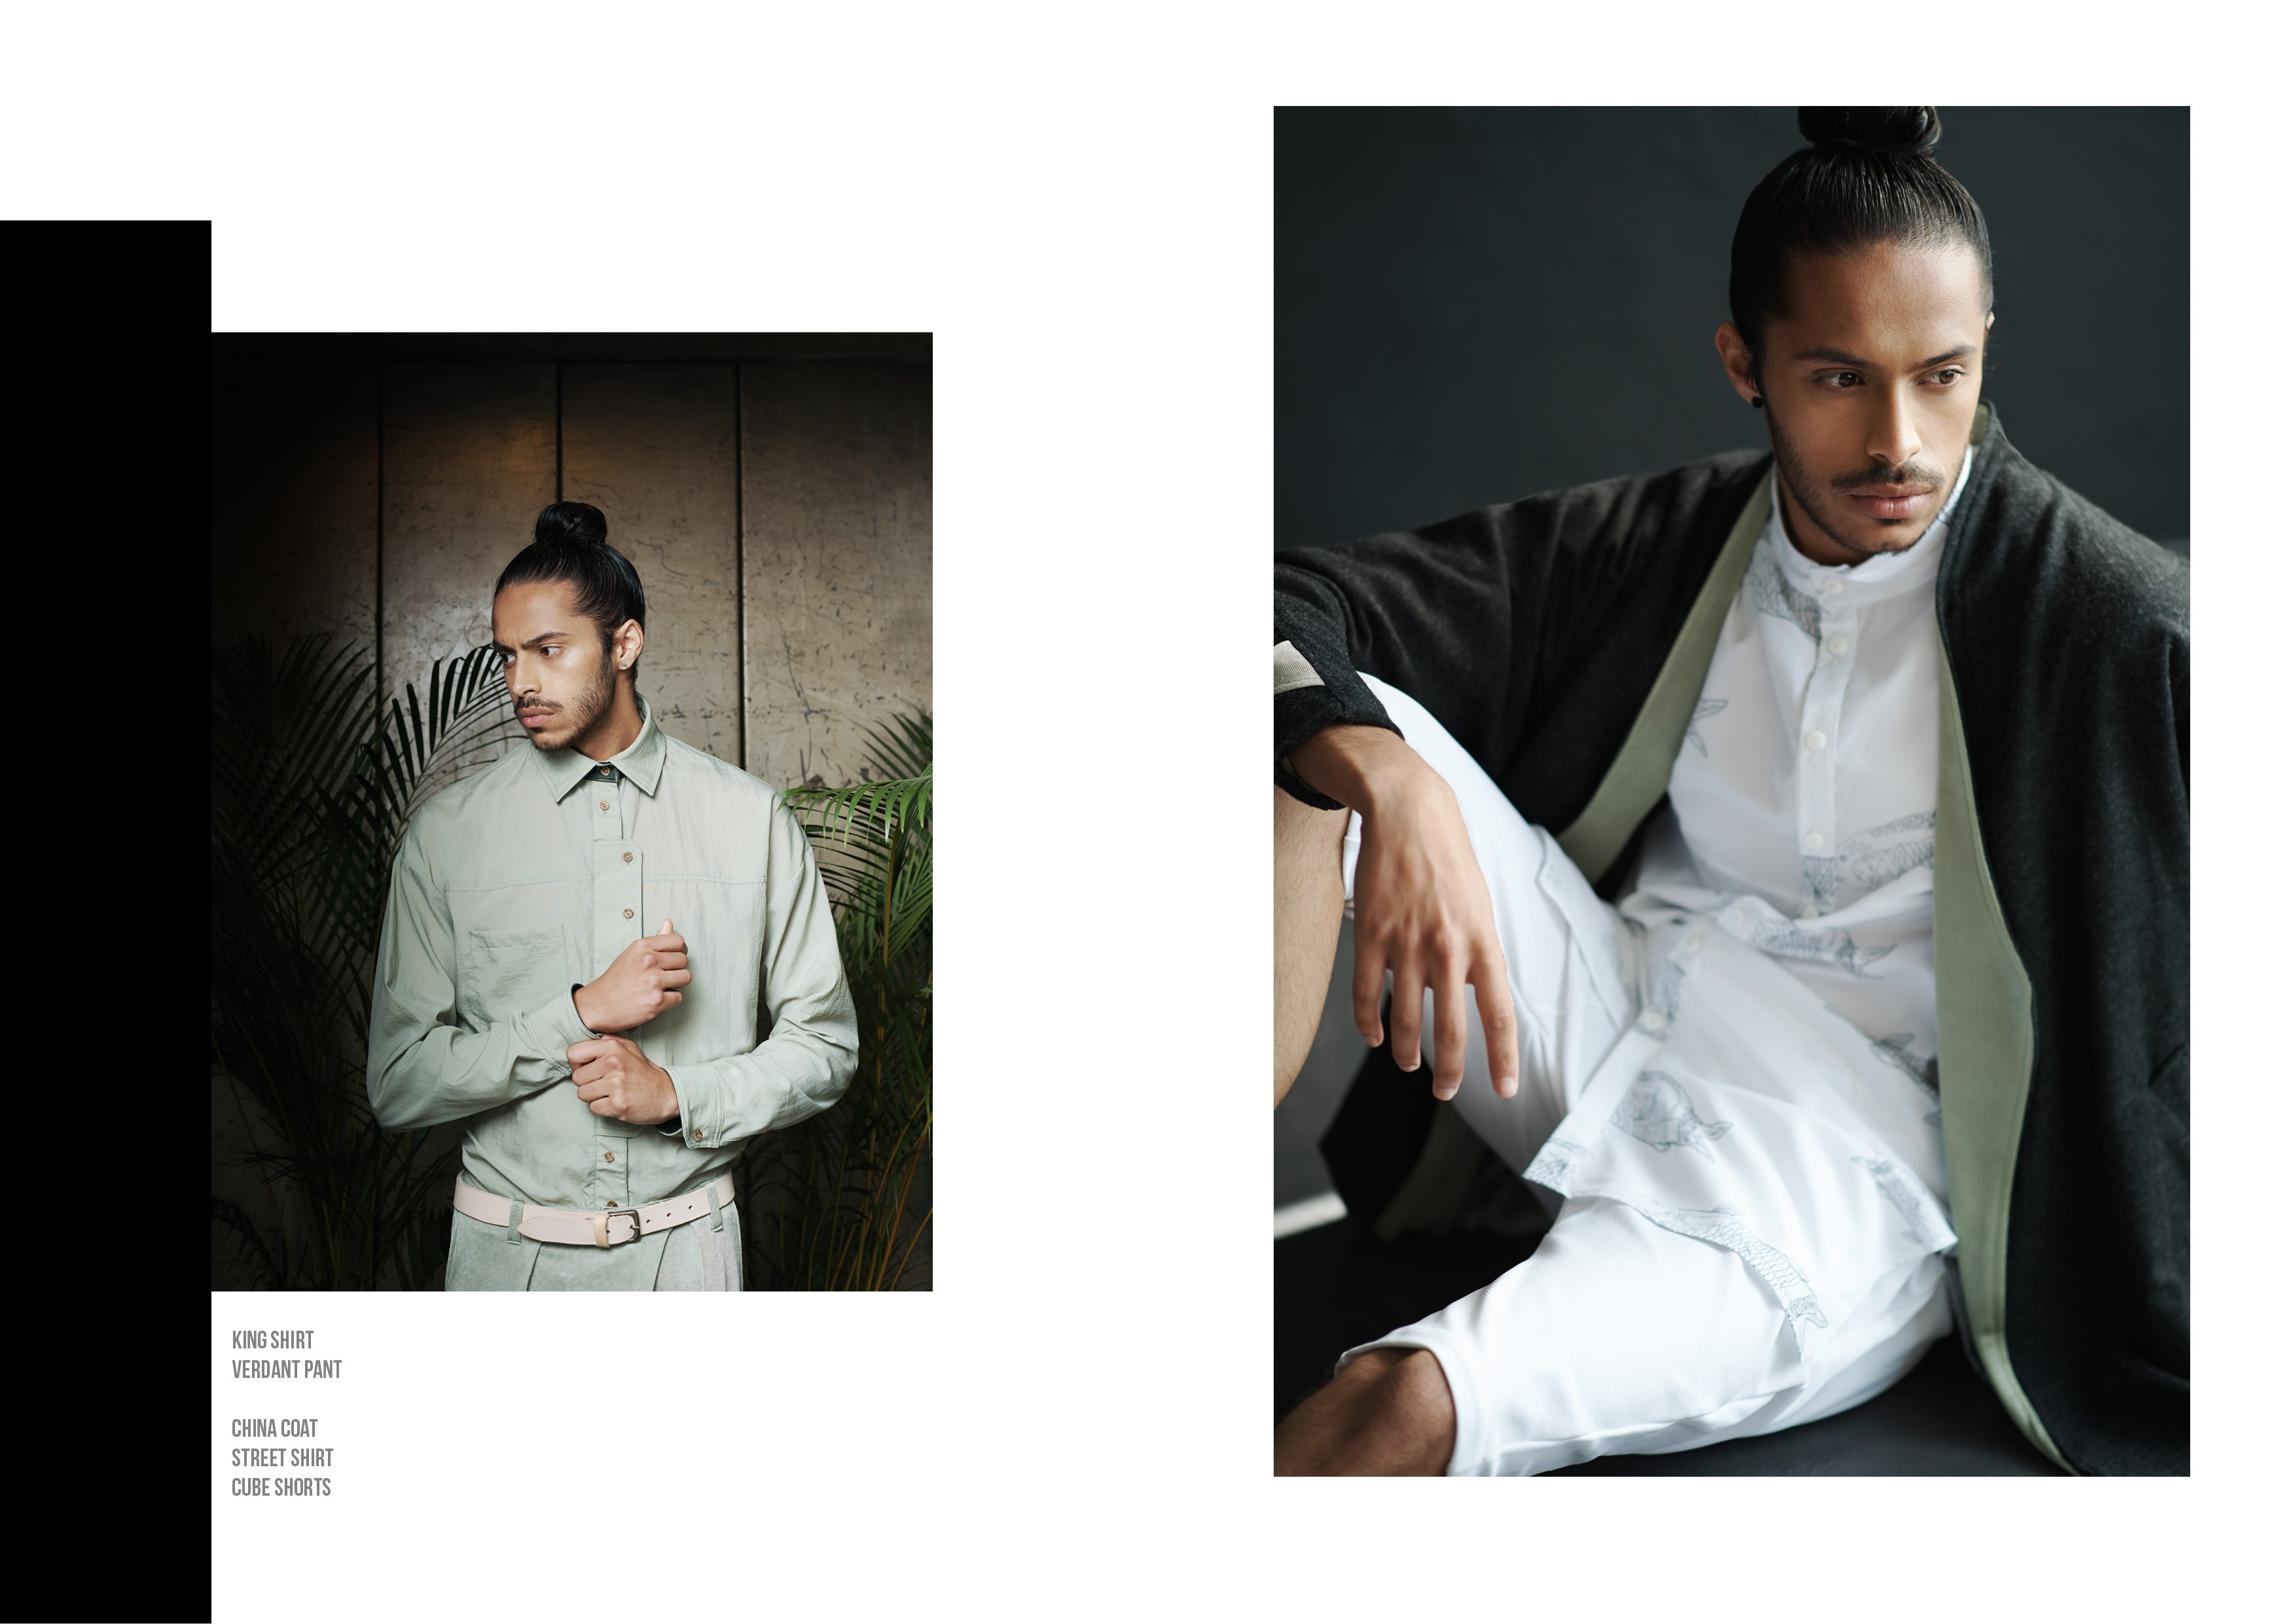 European Street Fashion Meets South African Design Gt Your border=